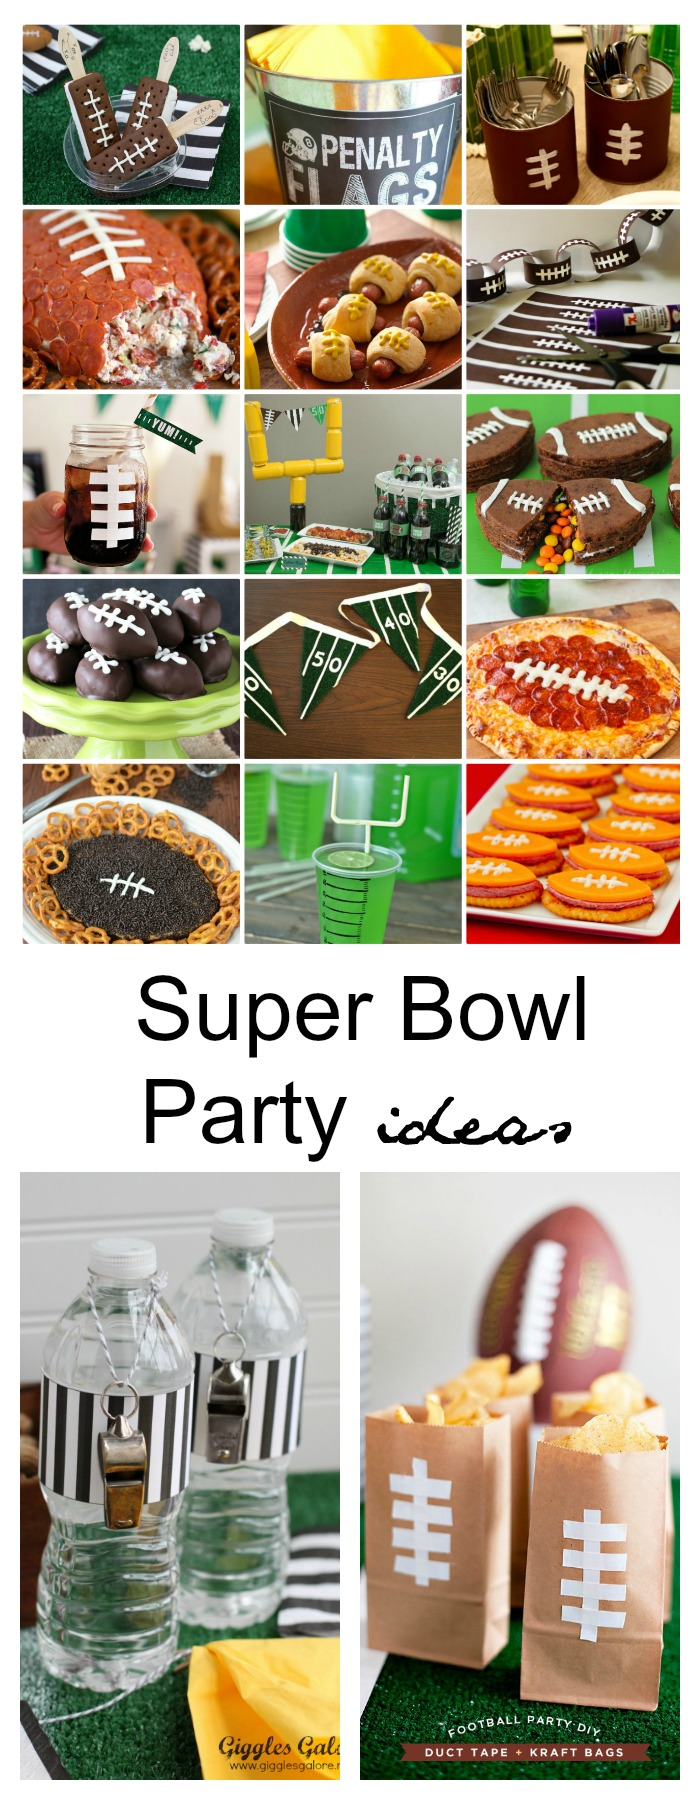 Super-Bowl-Party-Ideas-Pin